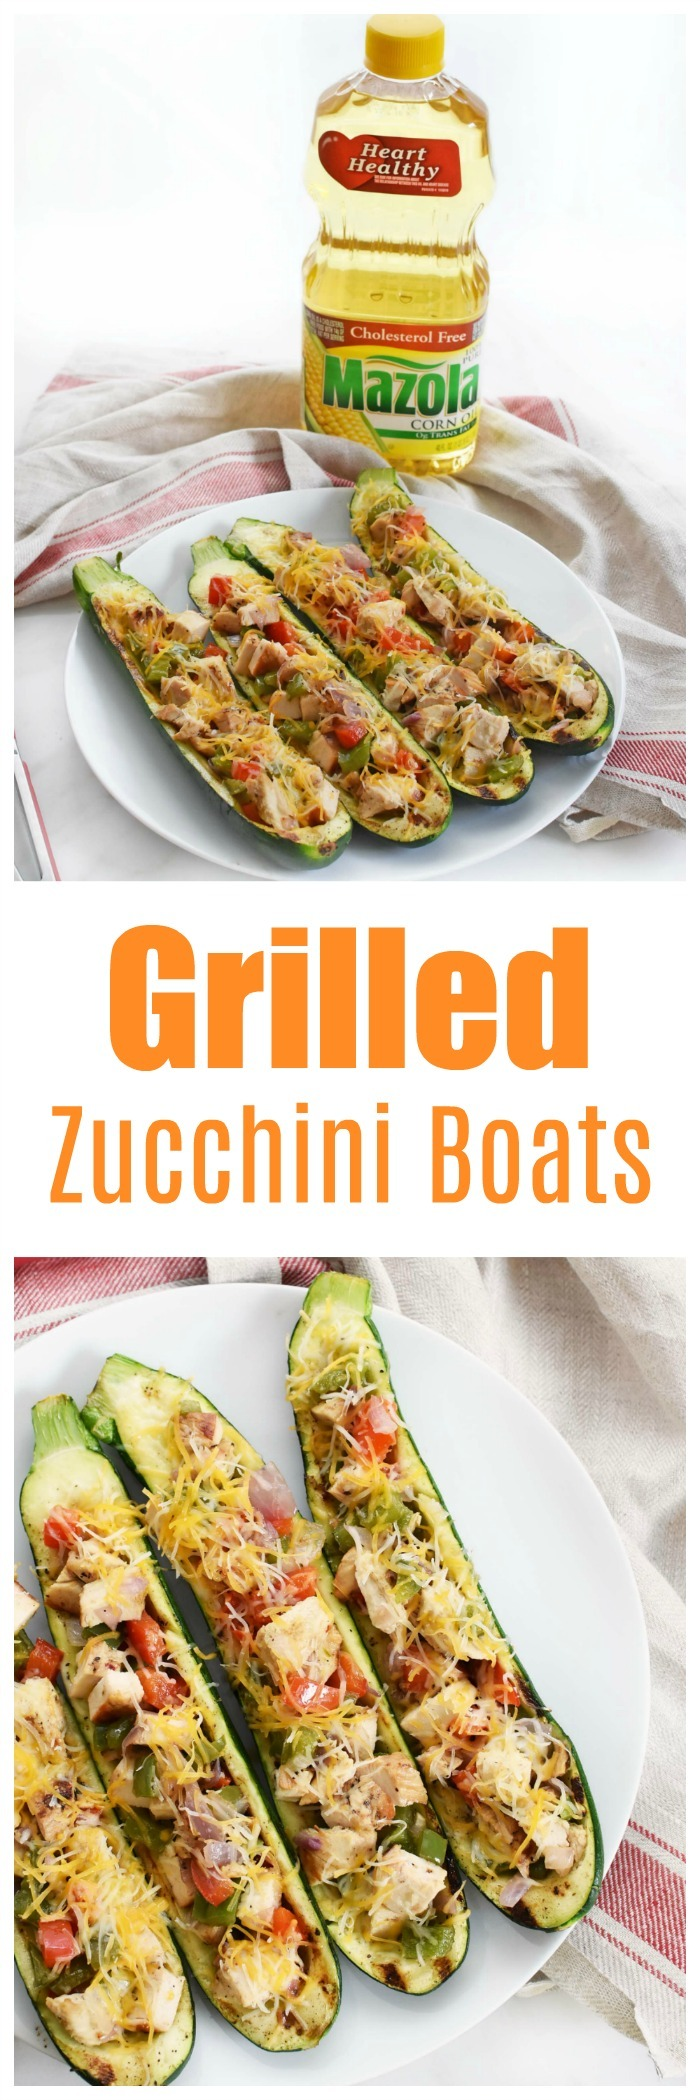 Grilled Zucchini Boats with Chicken & Veggies Recipe